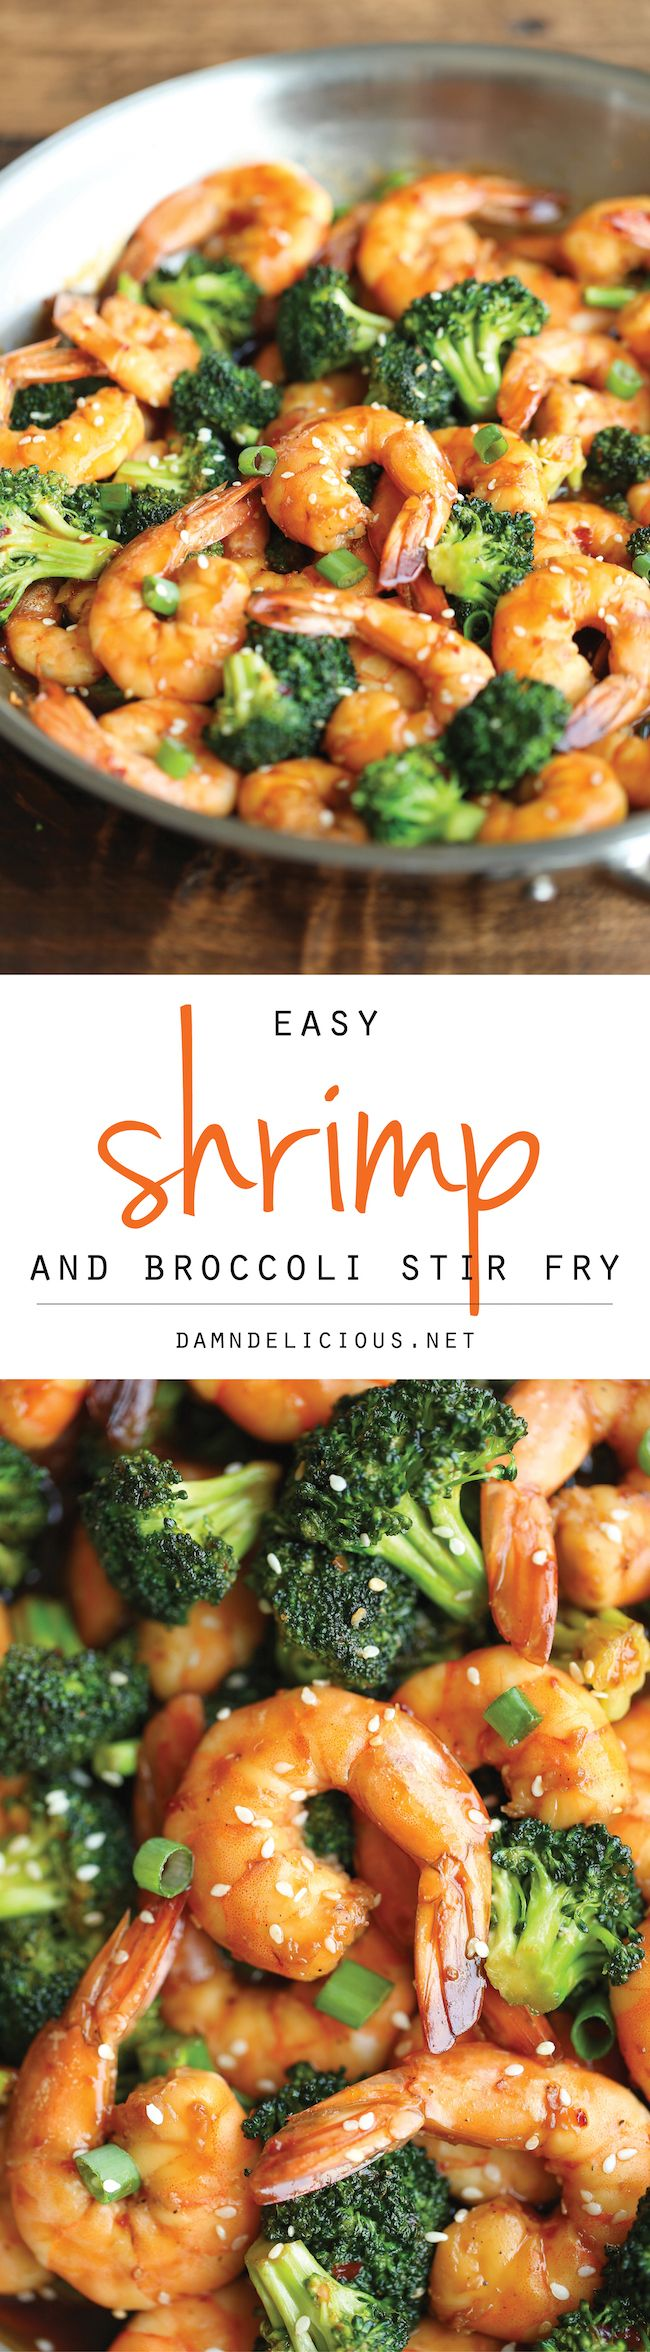 556 best chinese food images on pinterest clean eating recipes easy shrimp and broccoli stir fry forumfinder